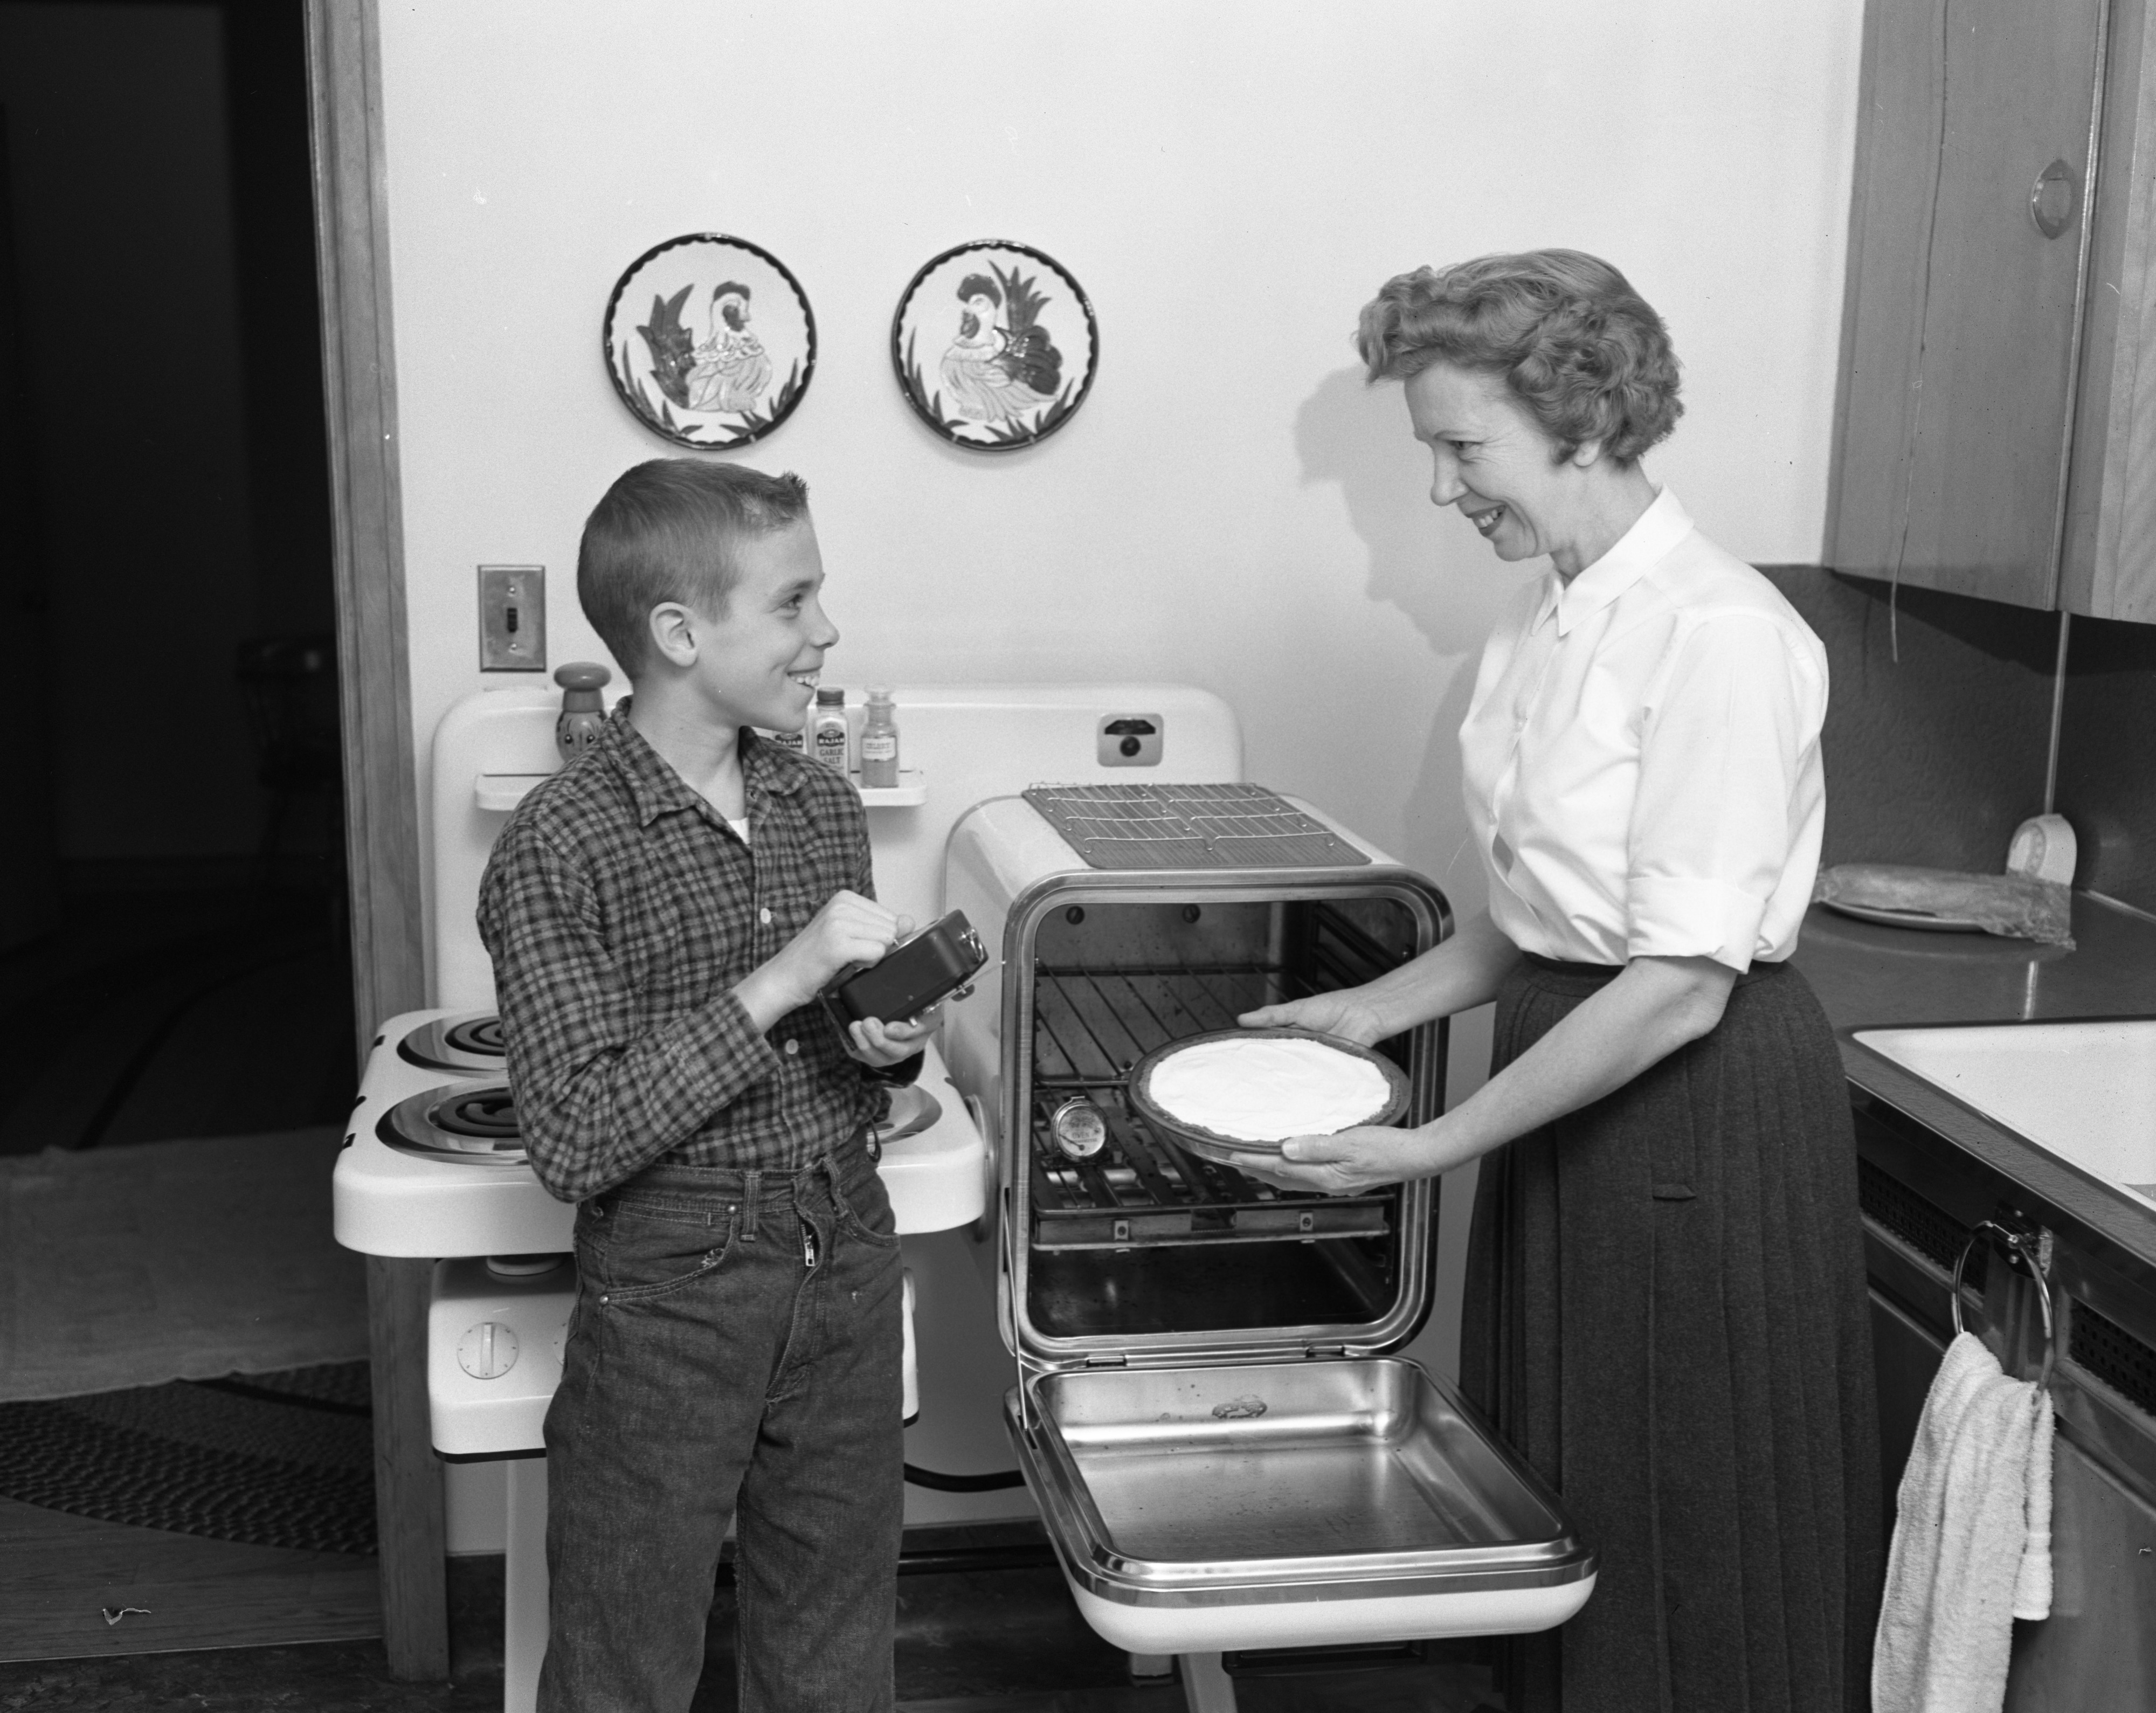 Lee Stansbury Sets A Timer For His Mother's Cheese Cake Pie, February 1961 image